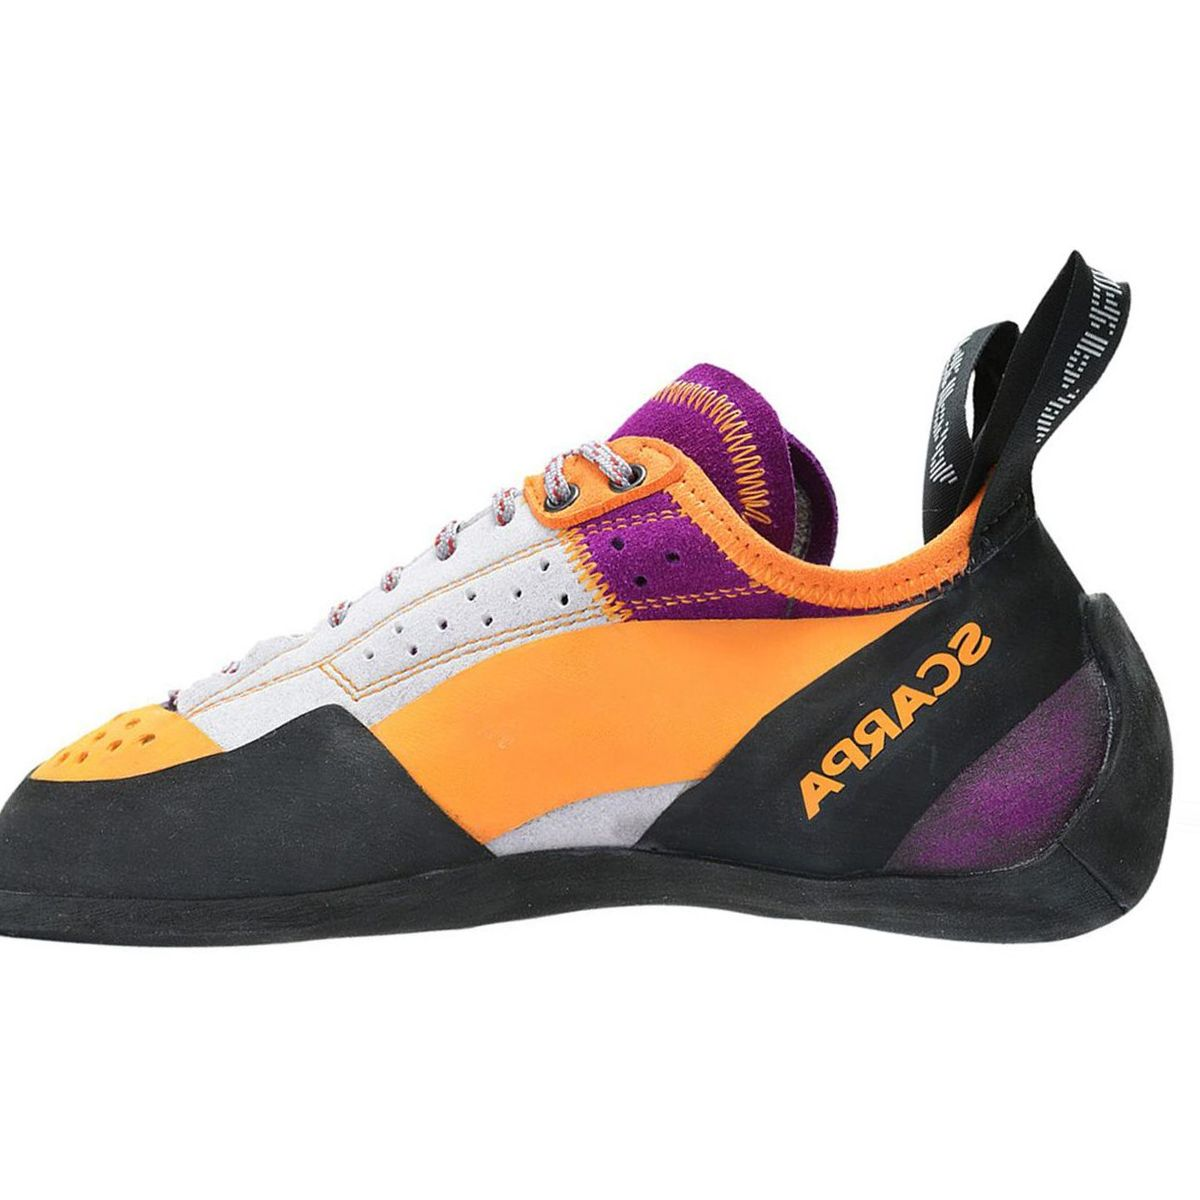 Scarpa Techno X Climbing Shoe - Women's